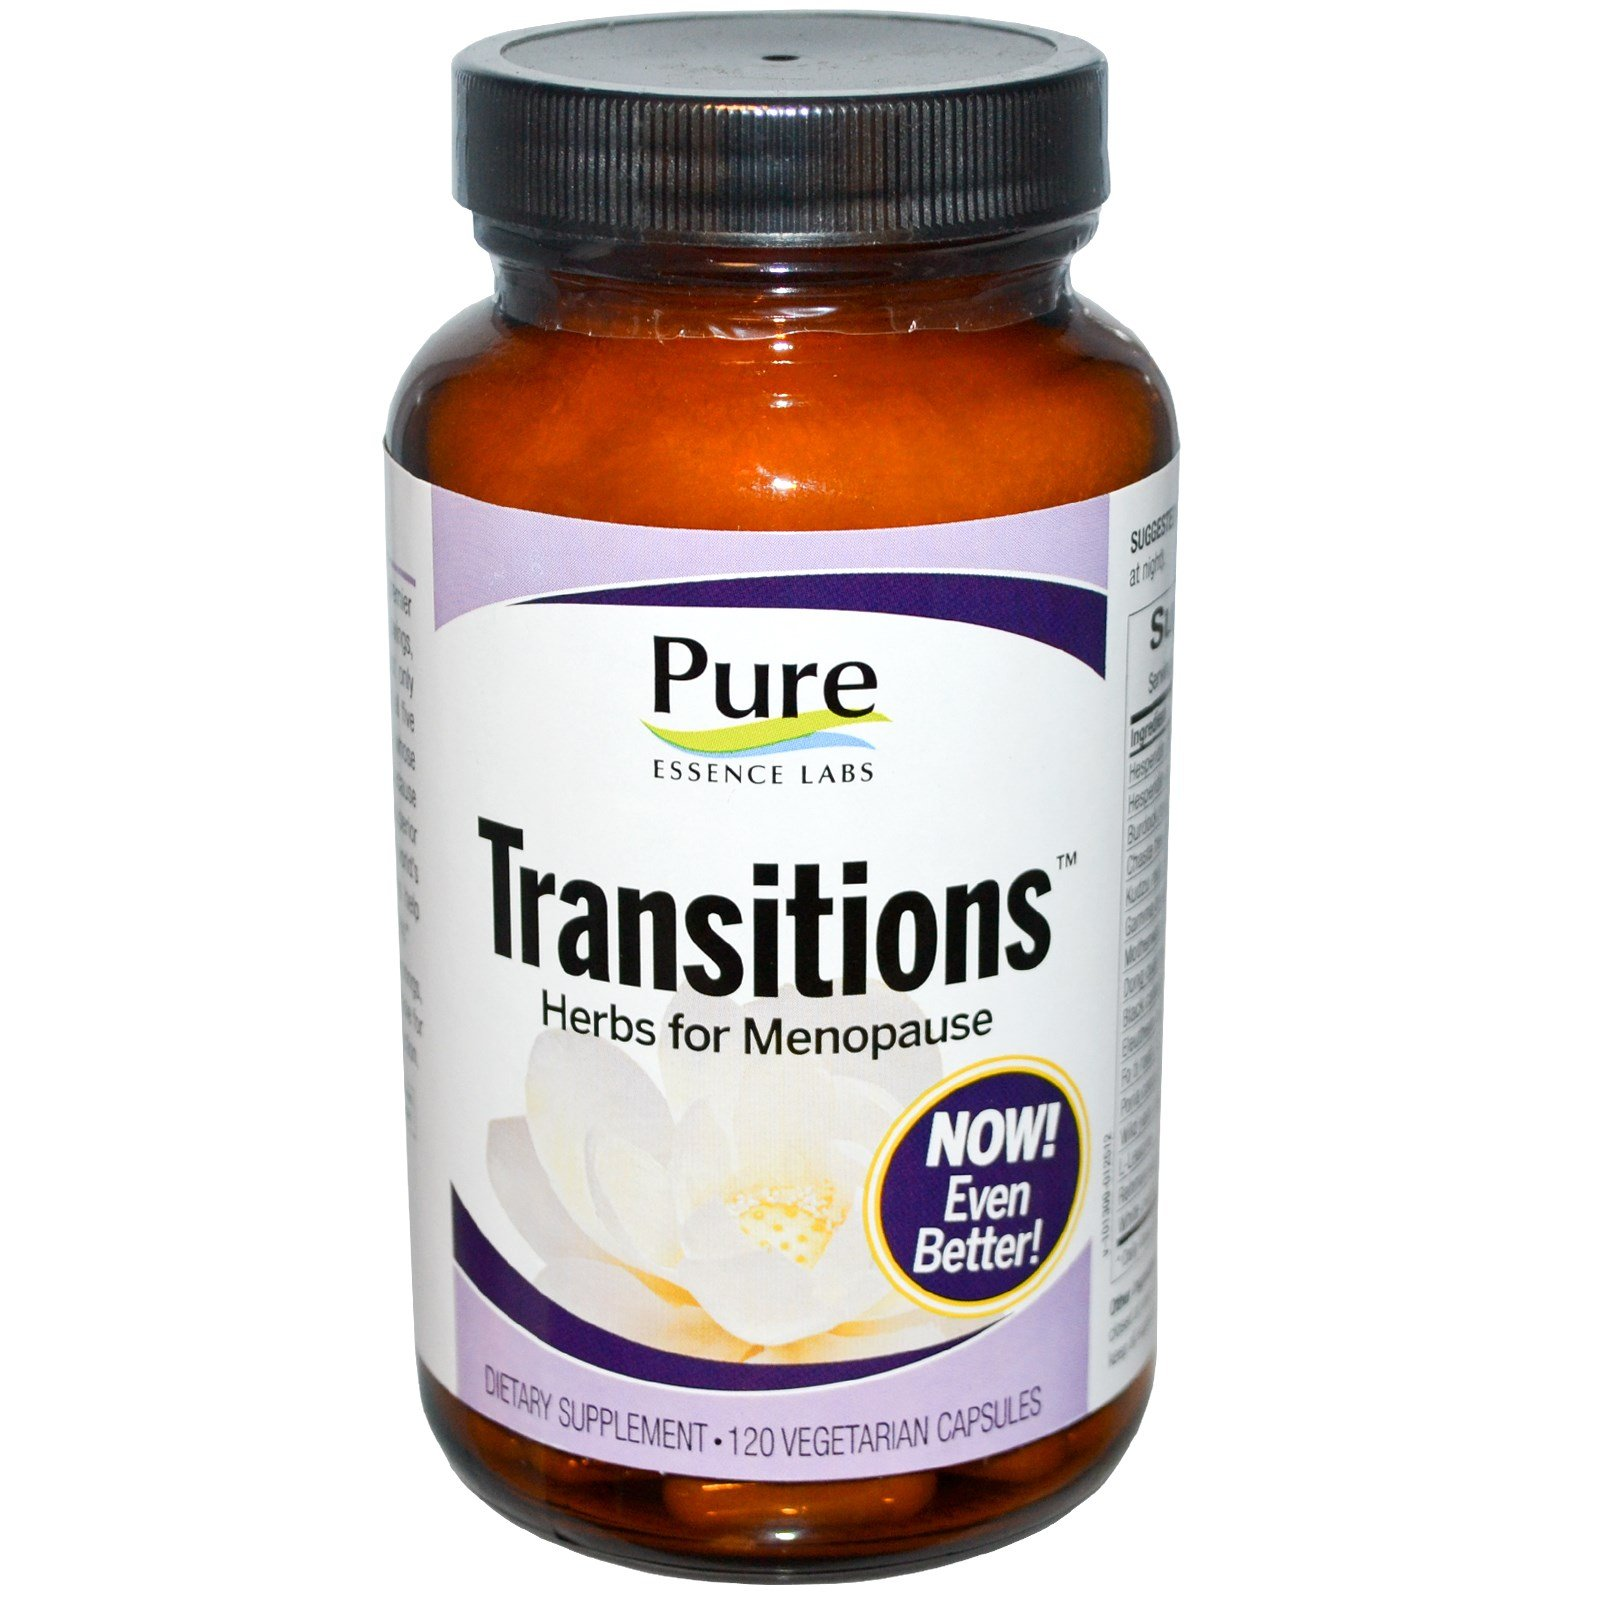 Pure Essence, Transitions, Herbs for Menopause, 120 Veggie Caps - 2pc by Pure Essence (Image #1)